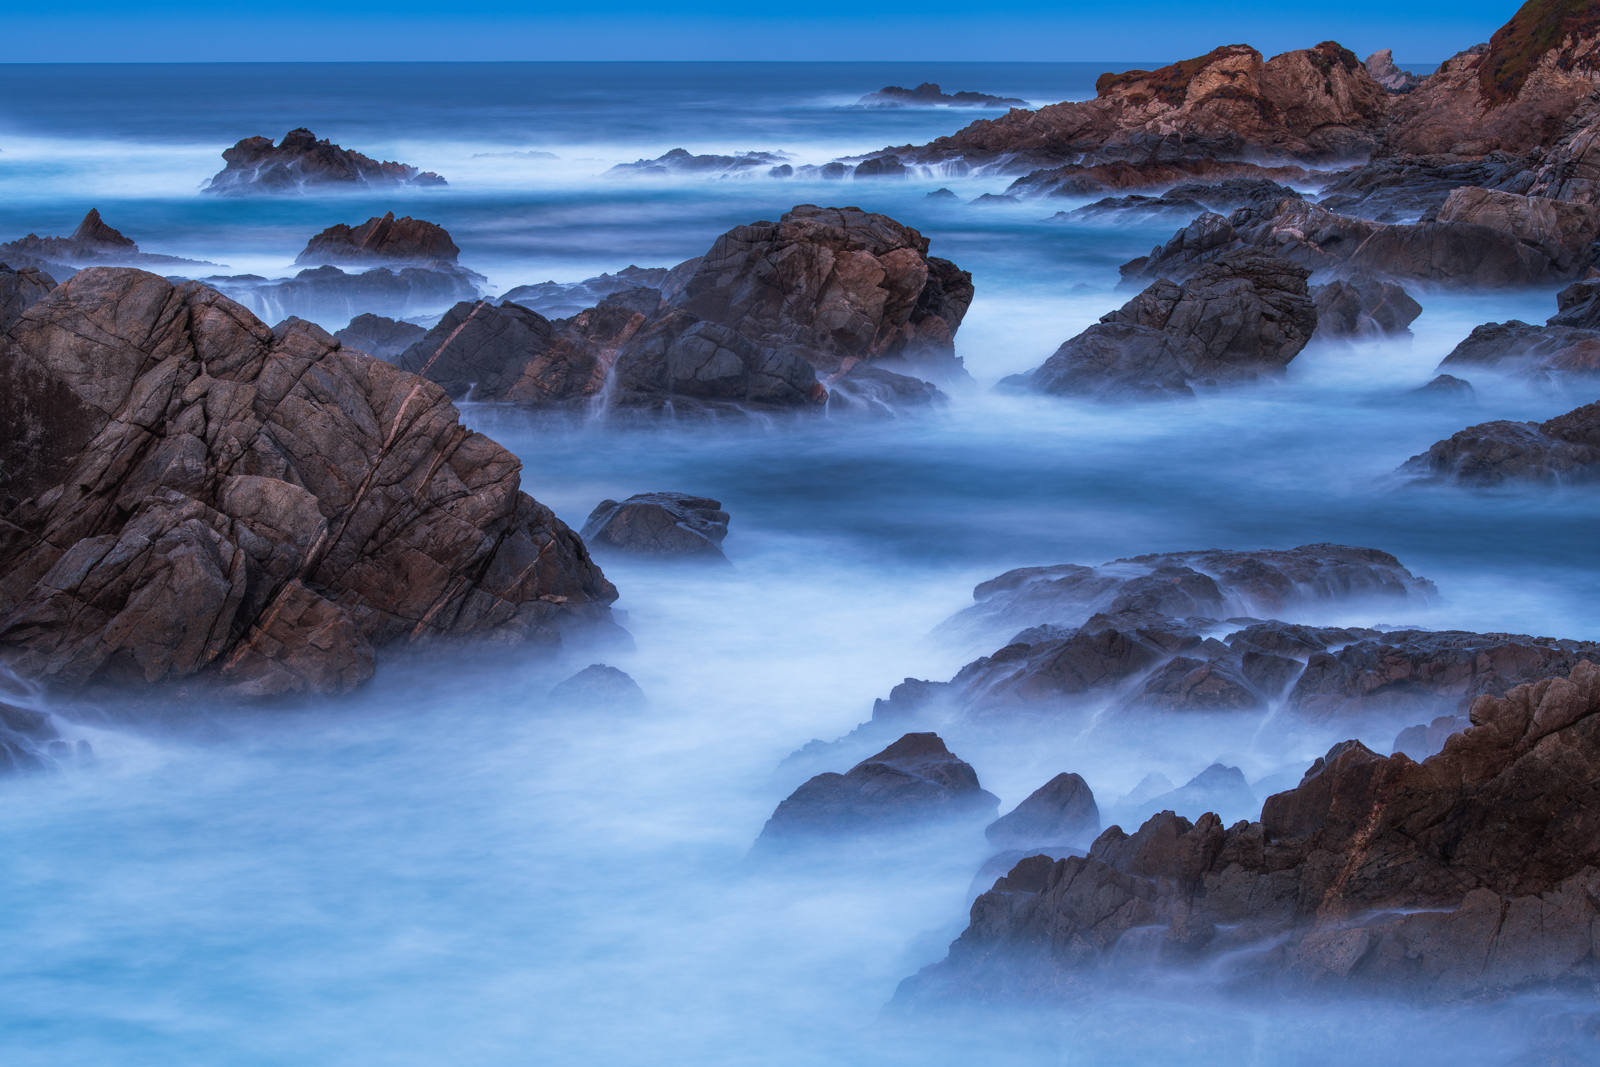 A long exposure at twilight captures a haunting feel along Big Sur's rugged coastline.